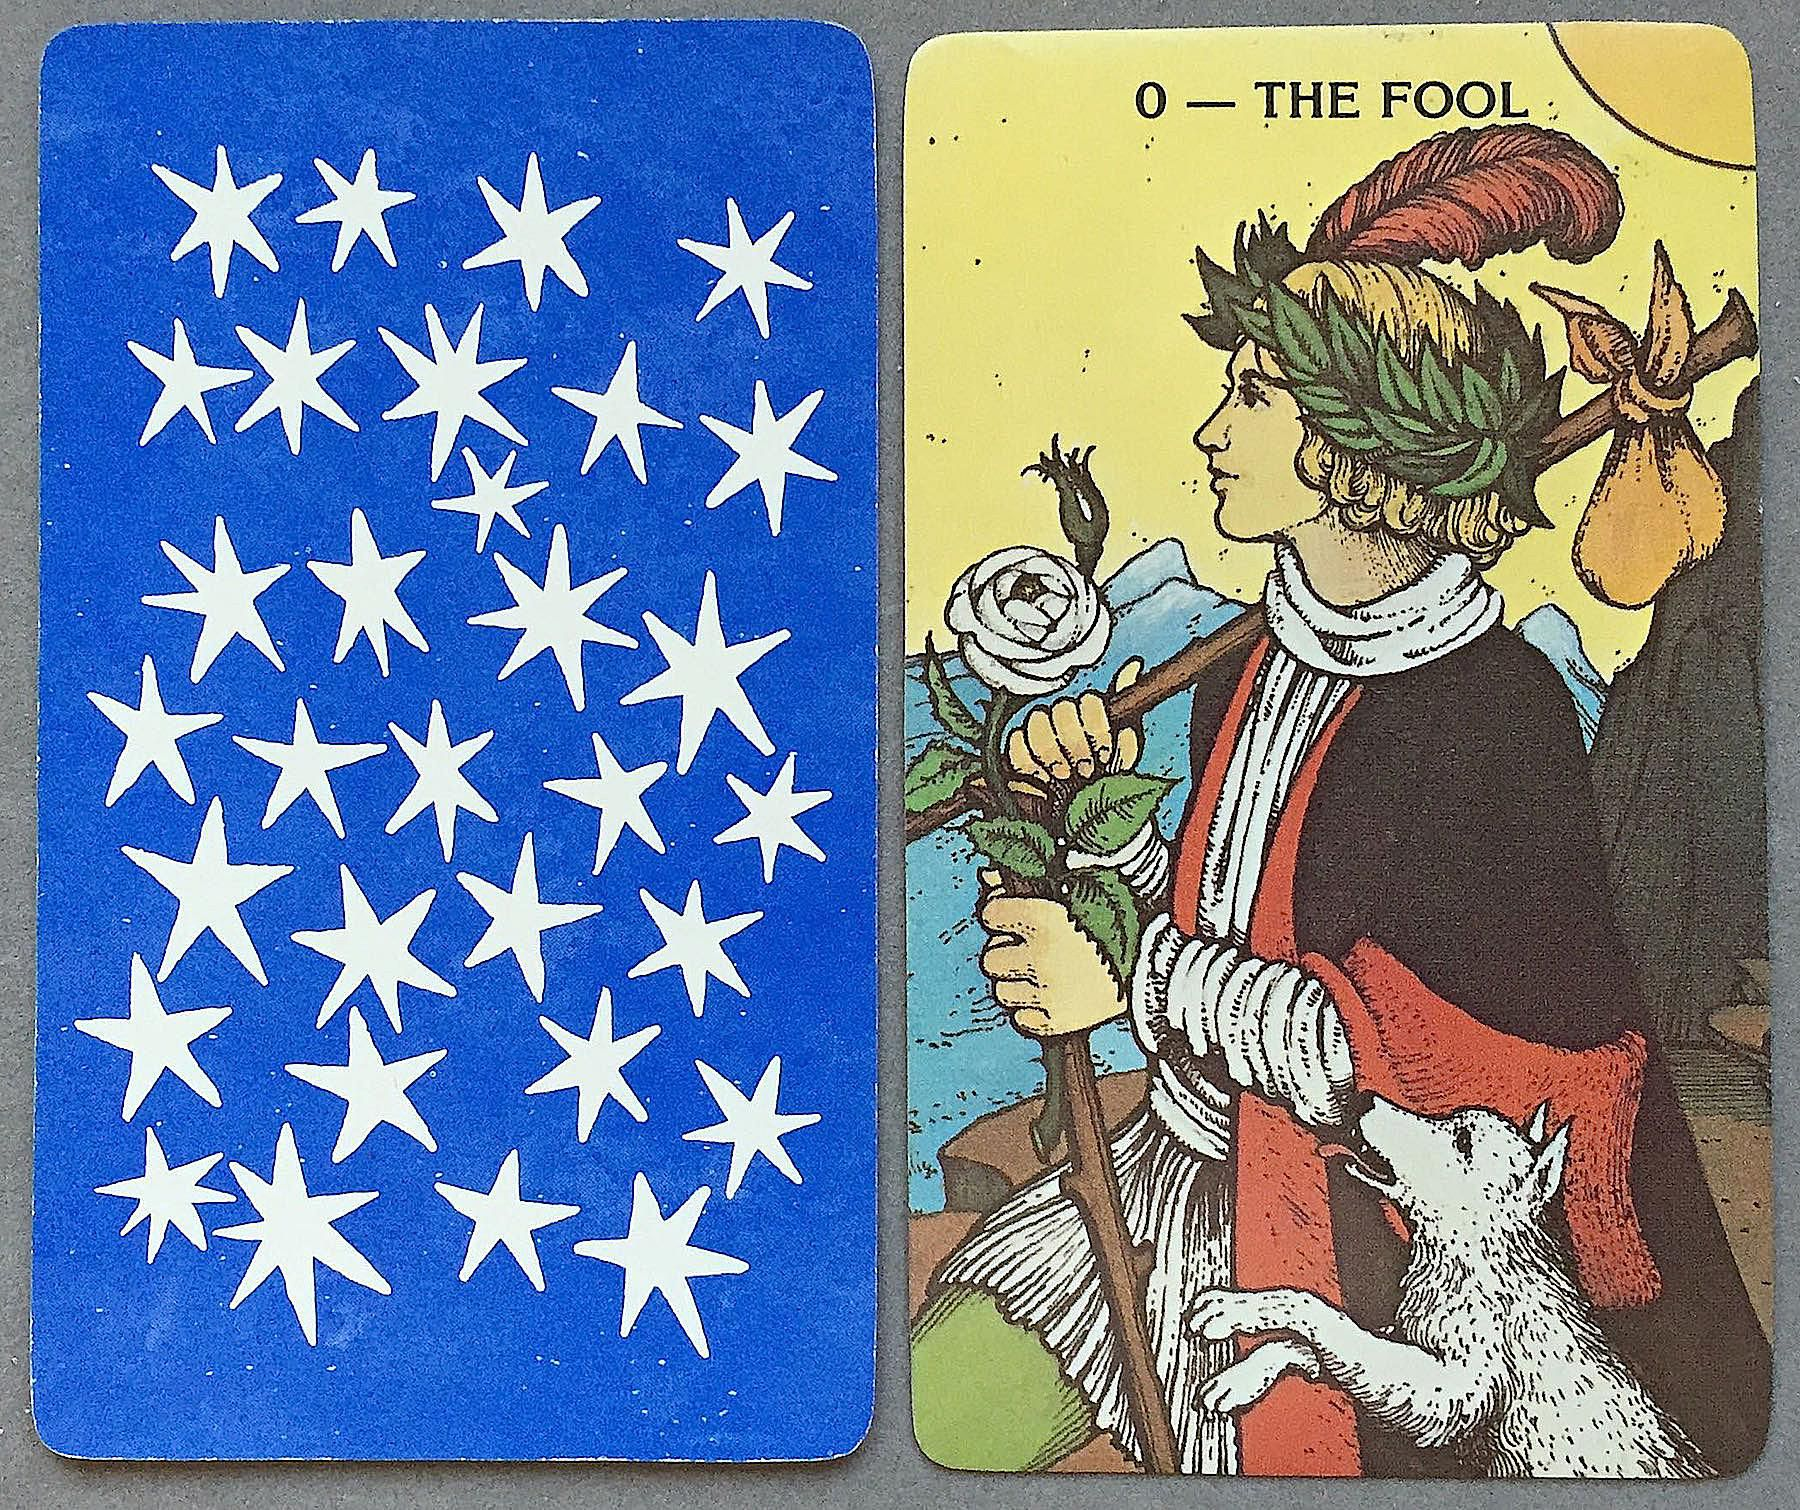 What the Fool Card Represents in a Tarot Card Reading